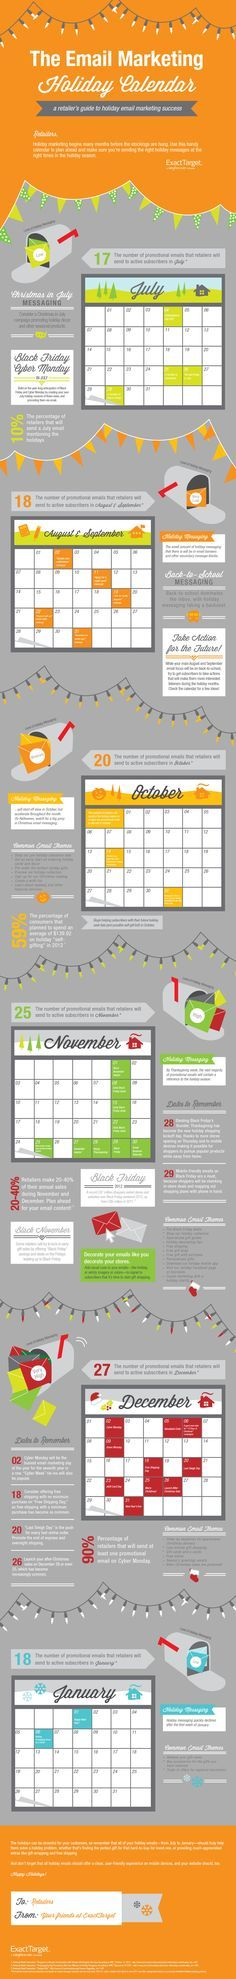 Best Marketing Calendar Images On   Marketing